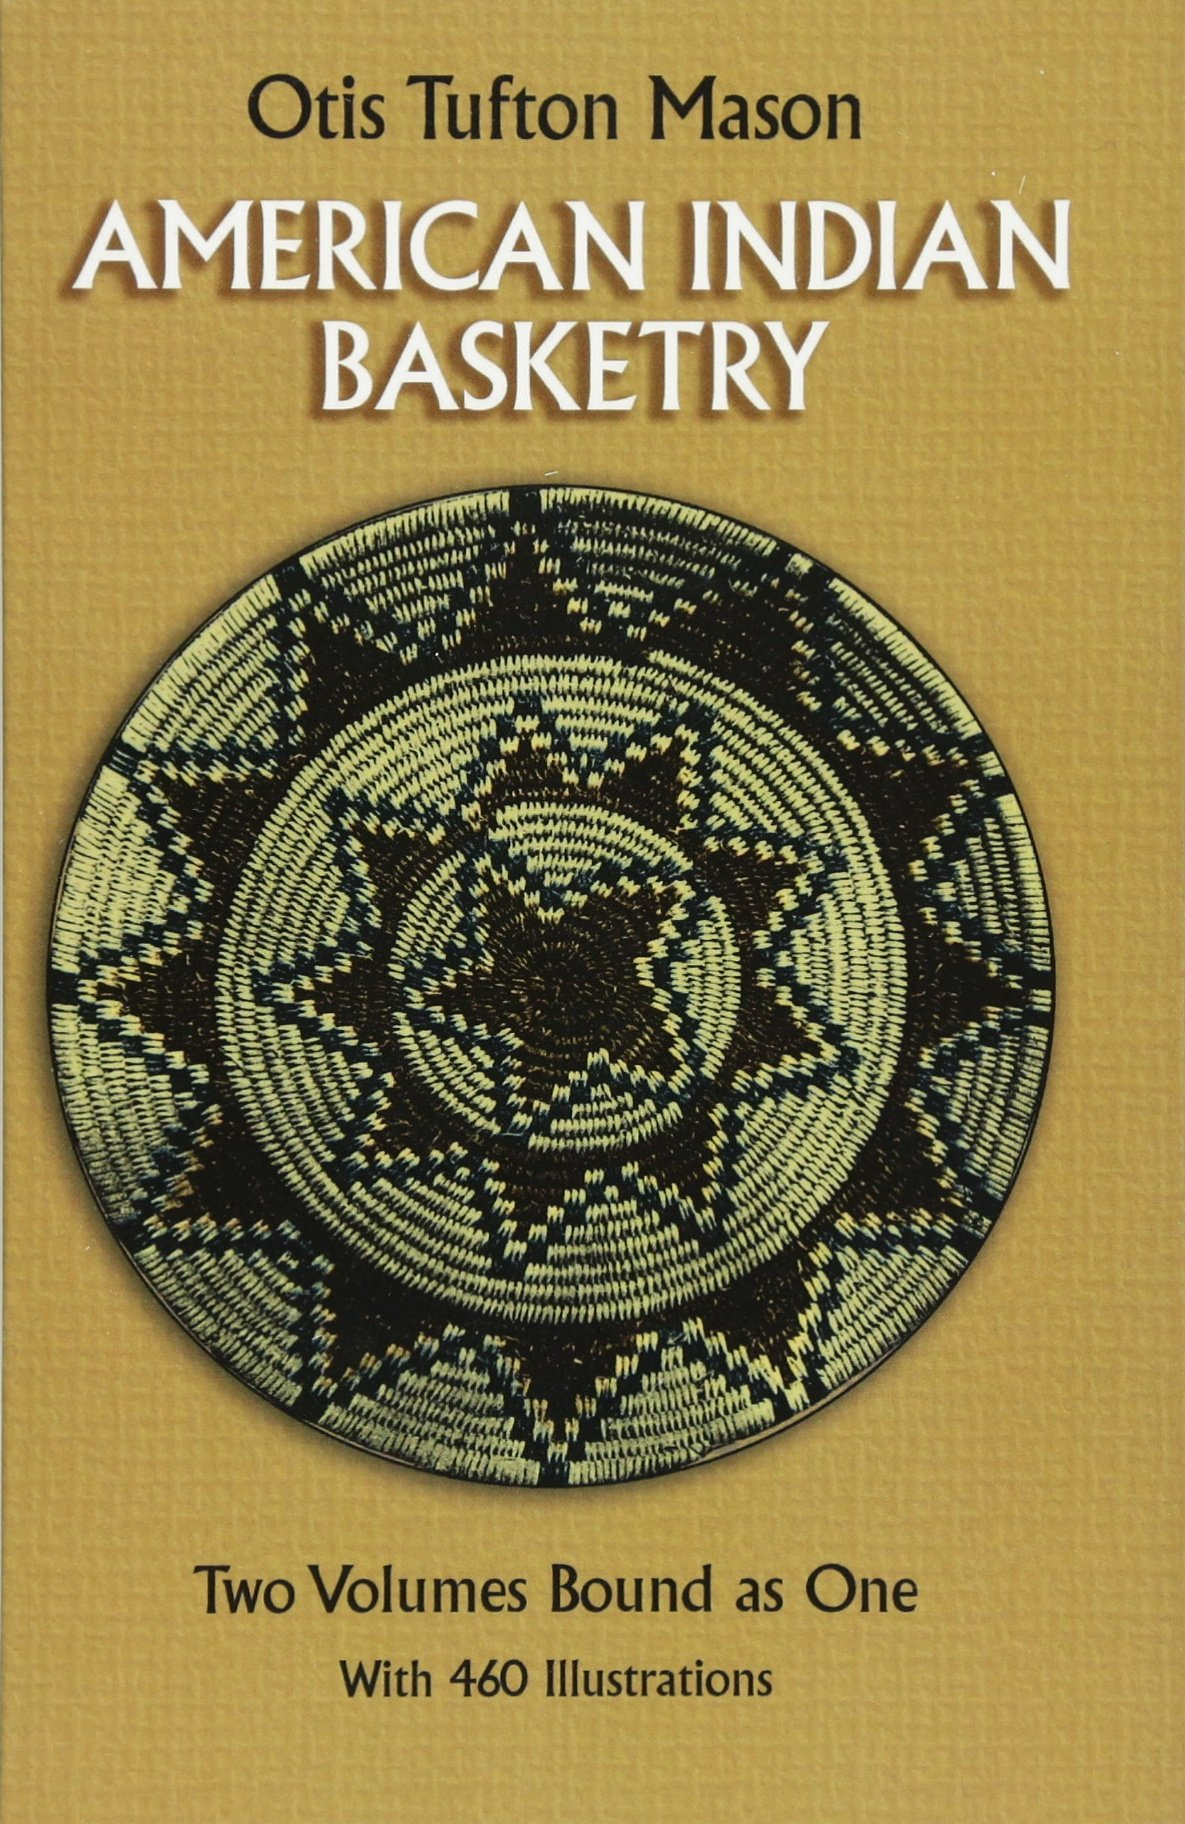 American Indian Basketry [Two Volumes Bound as One, With 460 Illustrations] by Dover Publications (Image #1)